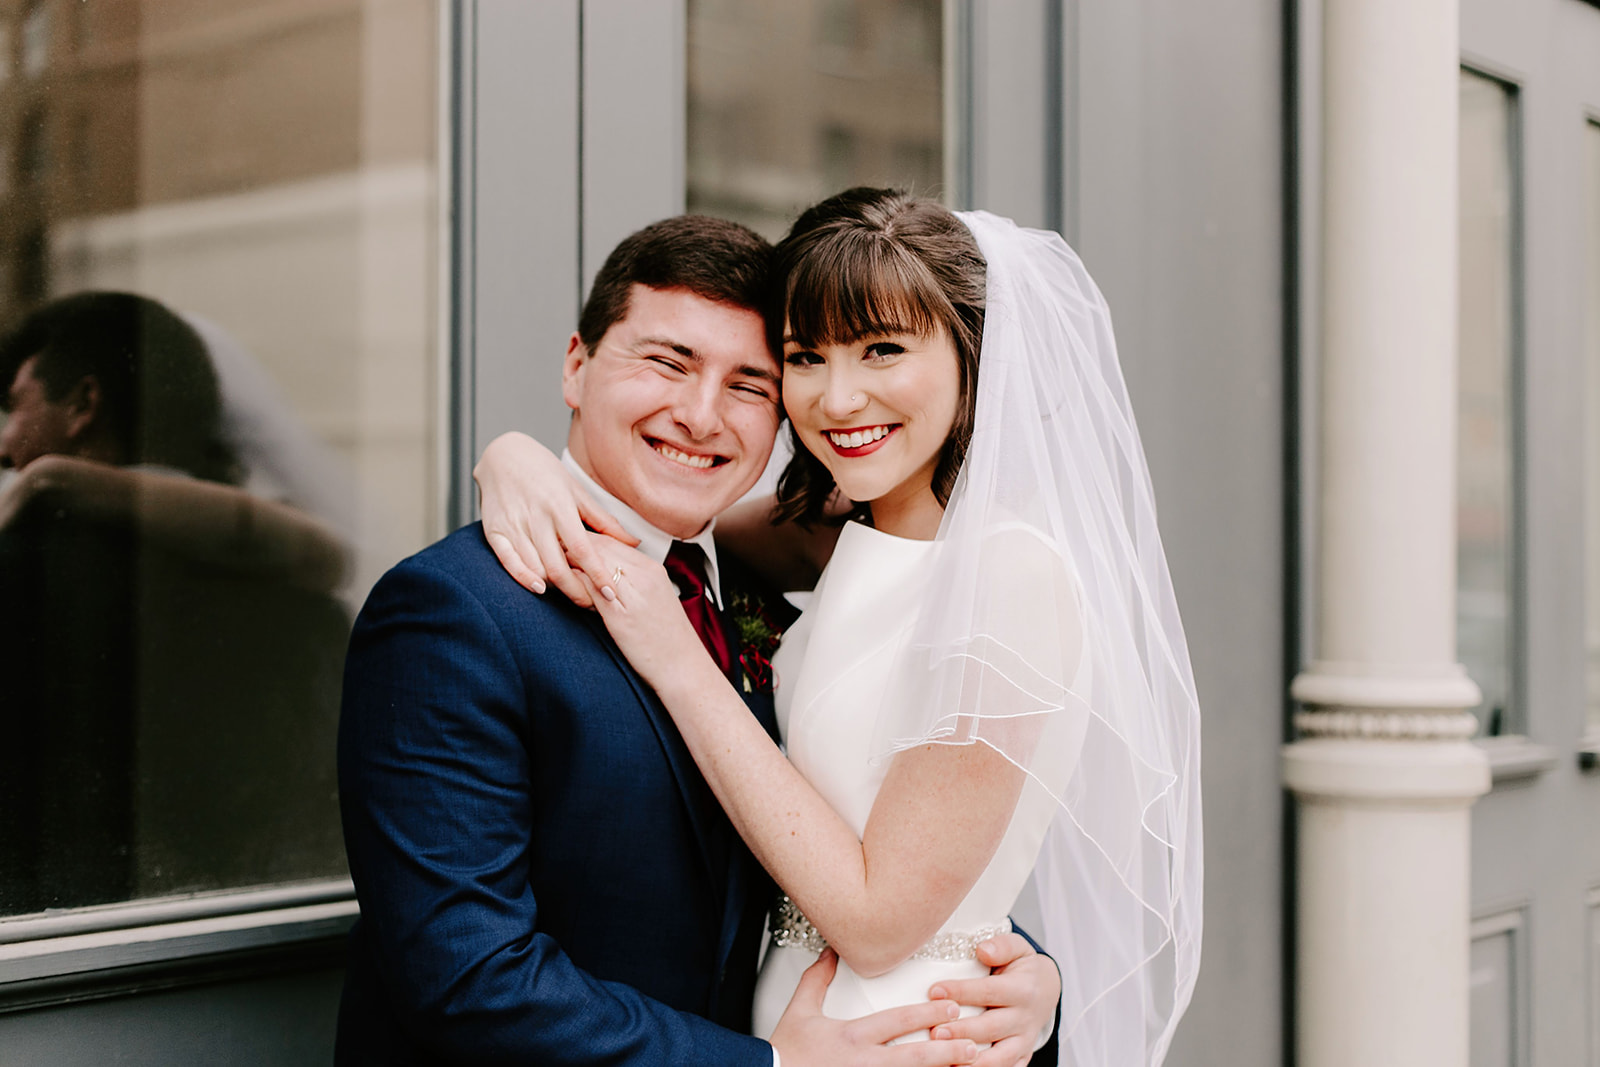 Emily and Davis_ Wedding at Vision Loft Indy in Indianapolis Indiana by Emily Elyse Wehner Photogrpahy LLC-181.jpg